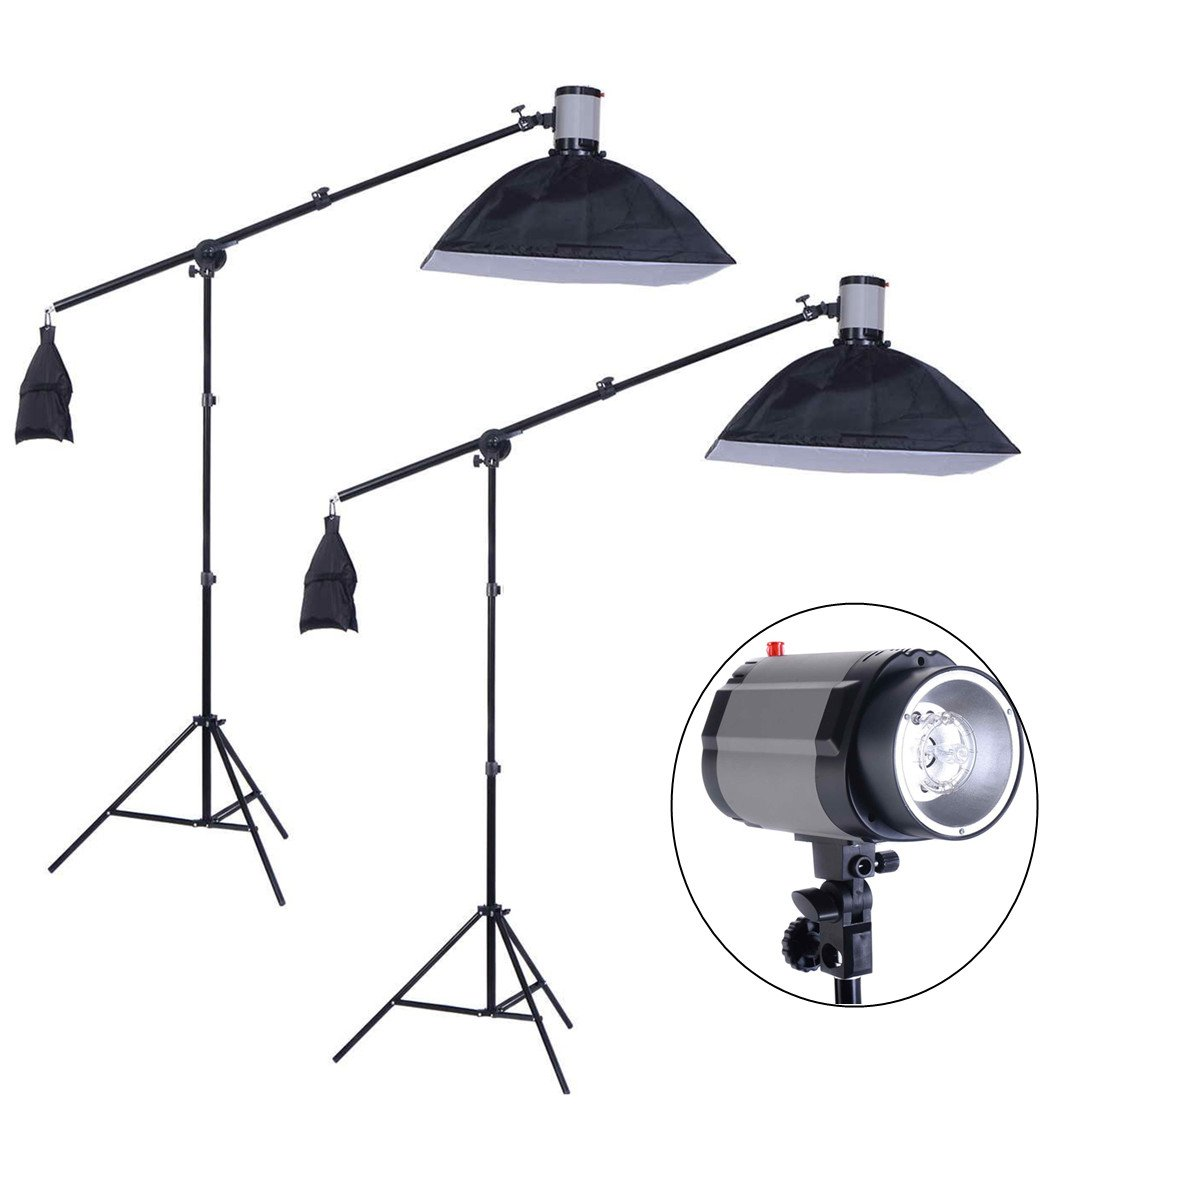 Safstar Professional Photo Studio Strobe Monolight Lighting Kit for Video Shooting, Location and Portrait Photography - 2 x Overhead Boom Light Kit, 2 x Softboxes, 1 x Carrying Bag by S AFSTAR